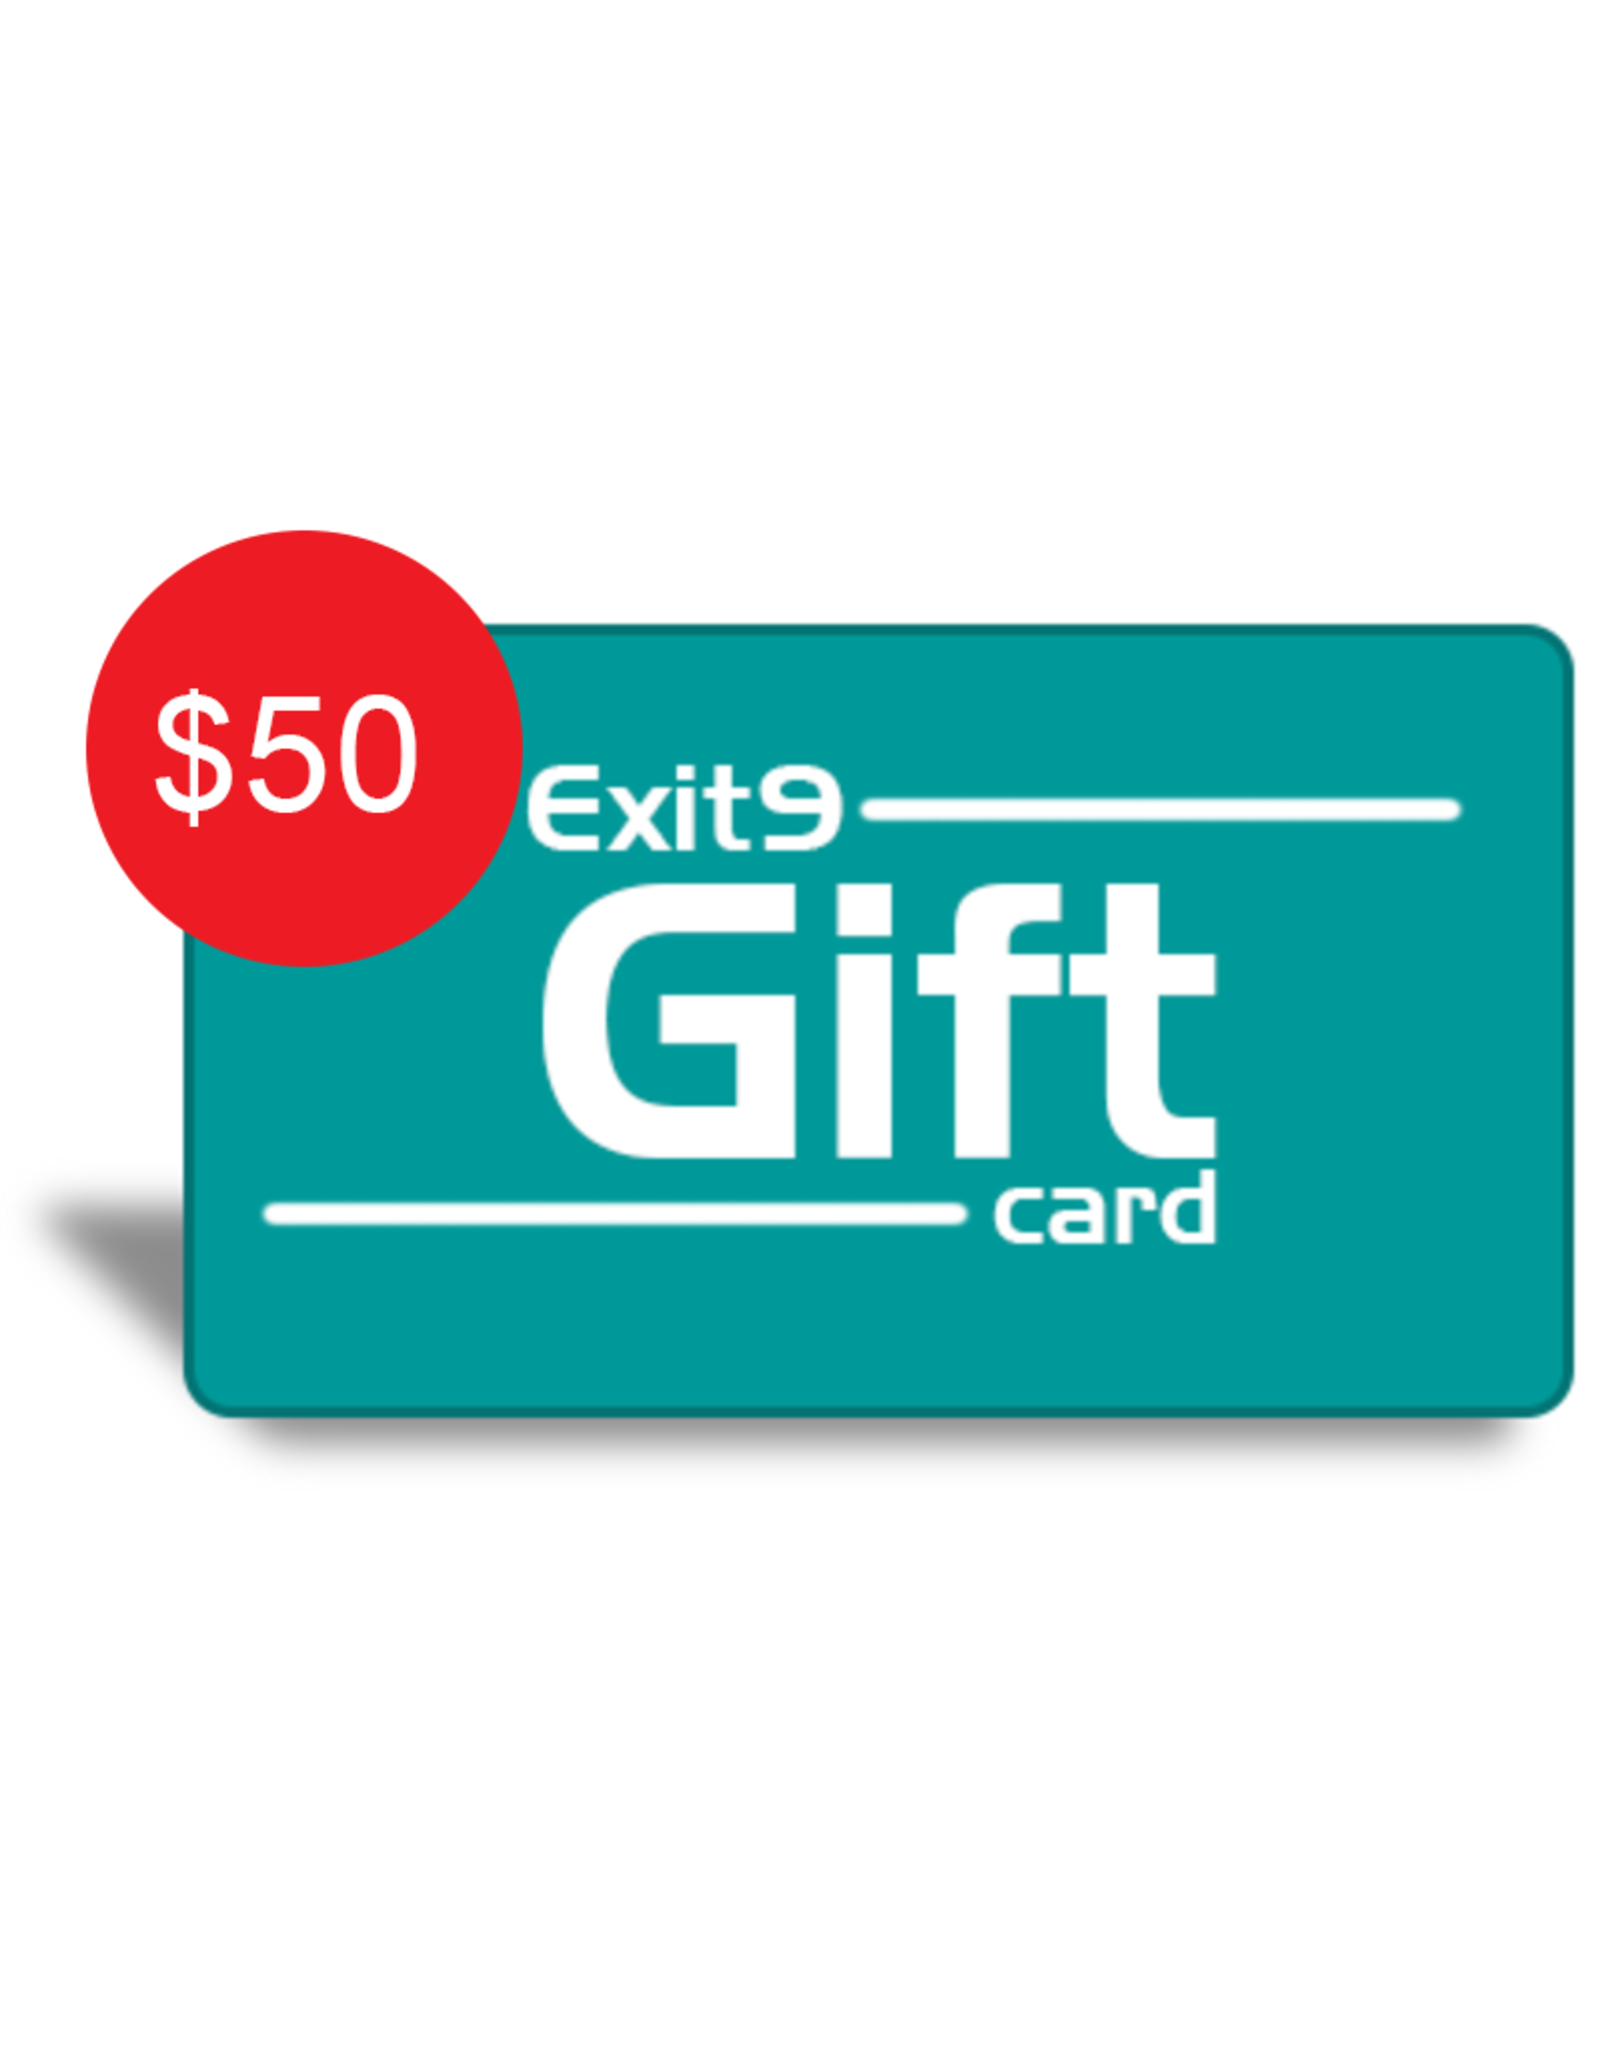 Exit9 Gift Card $50